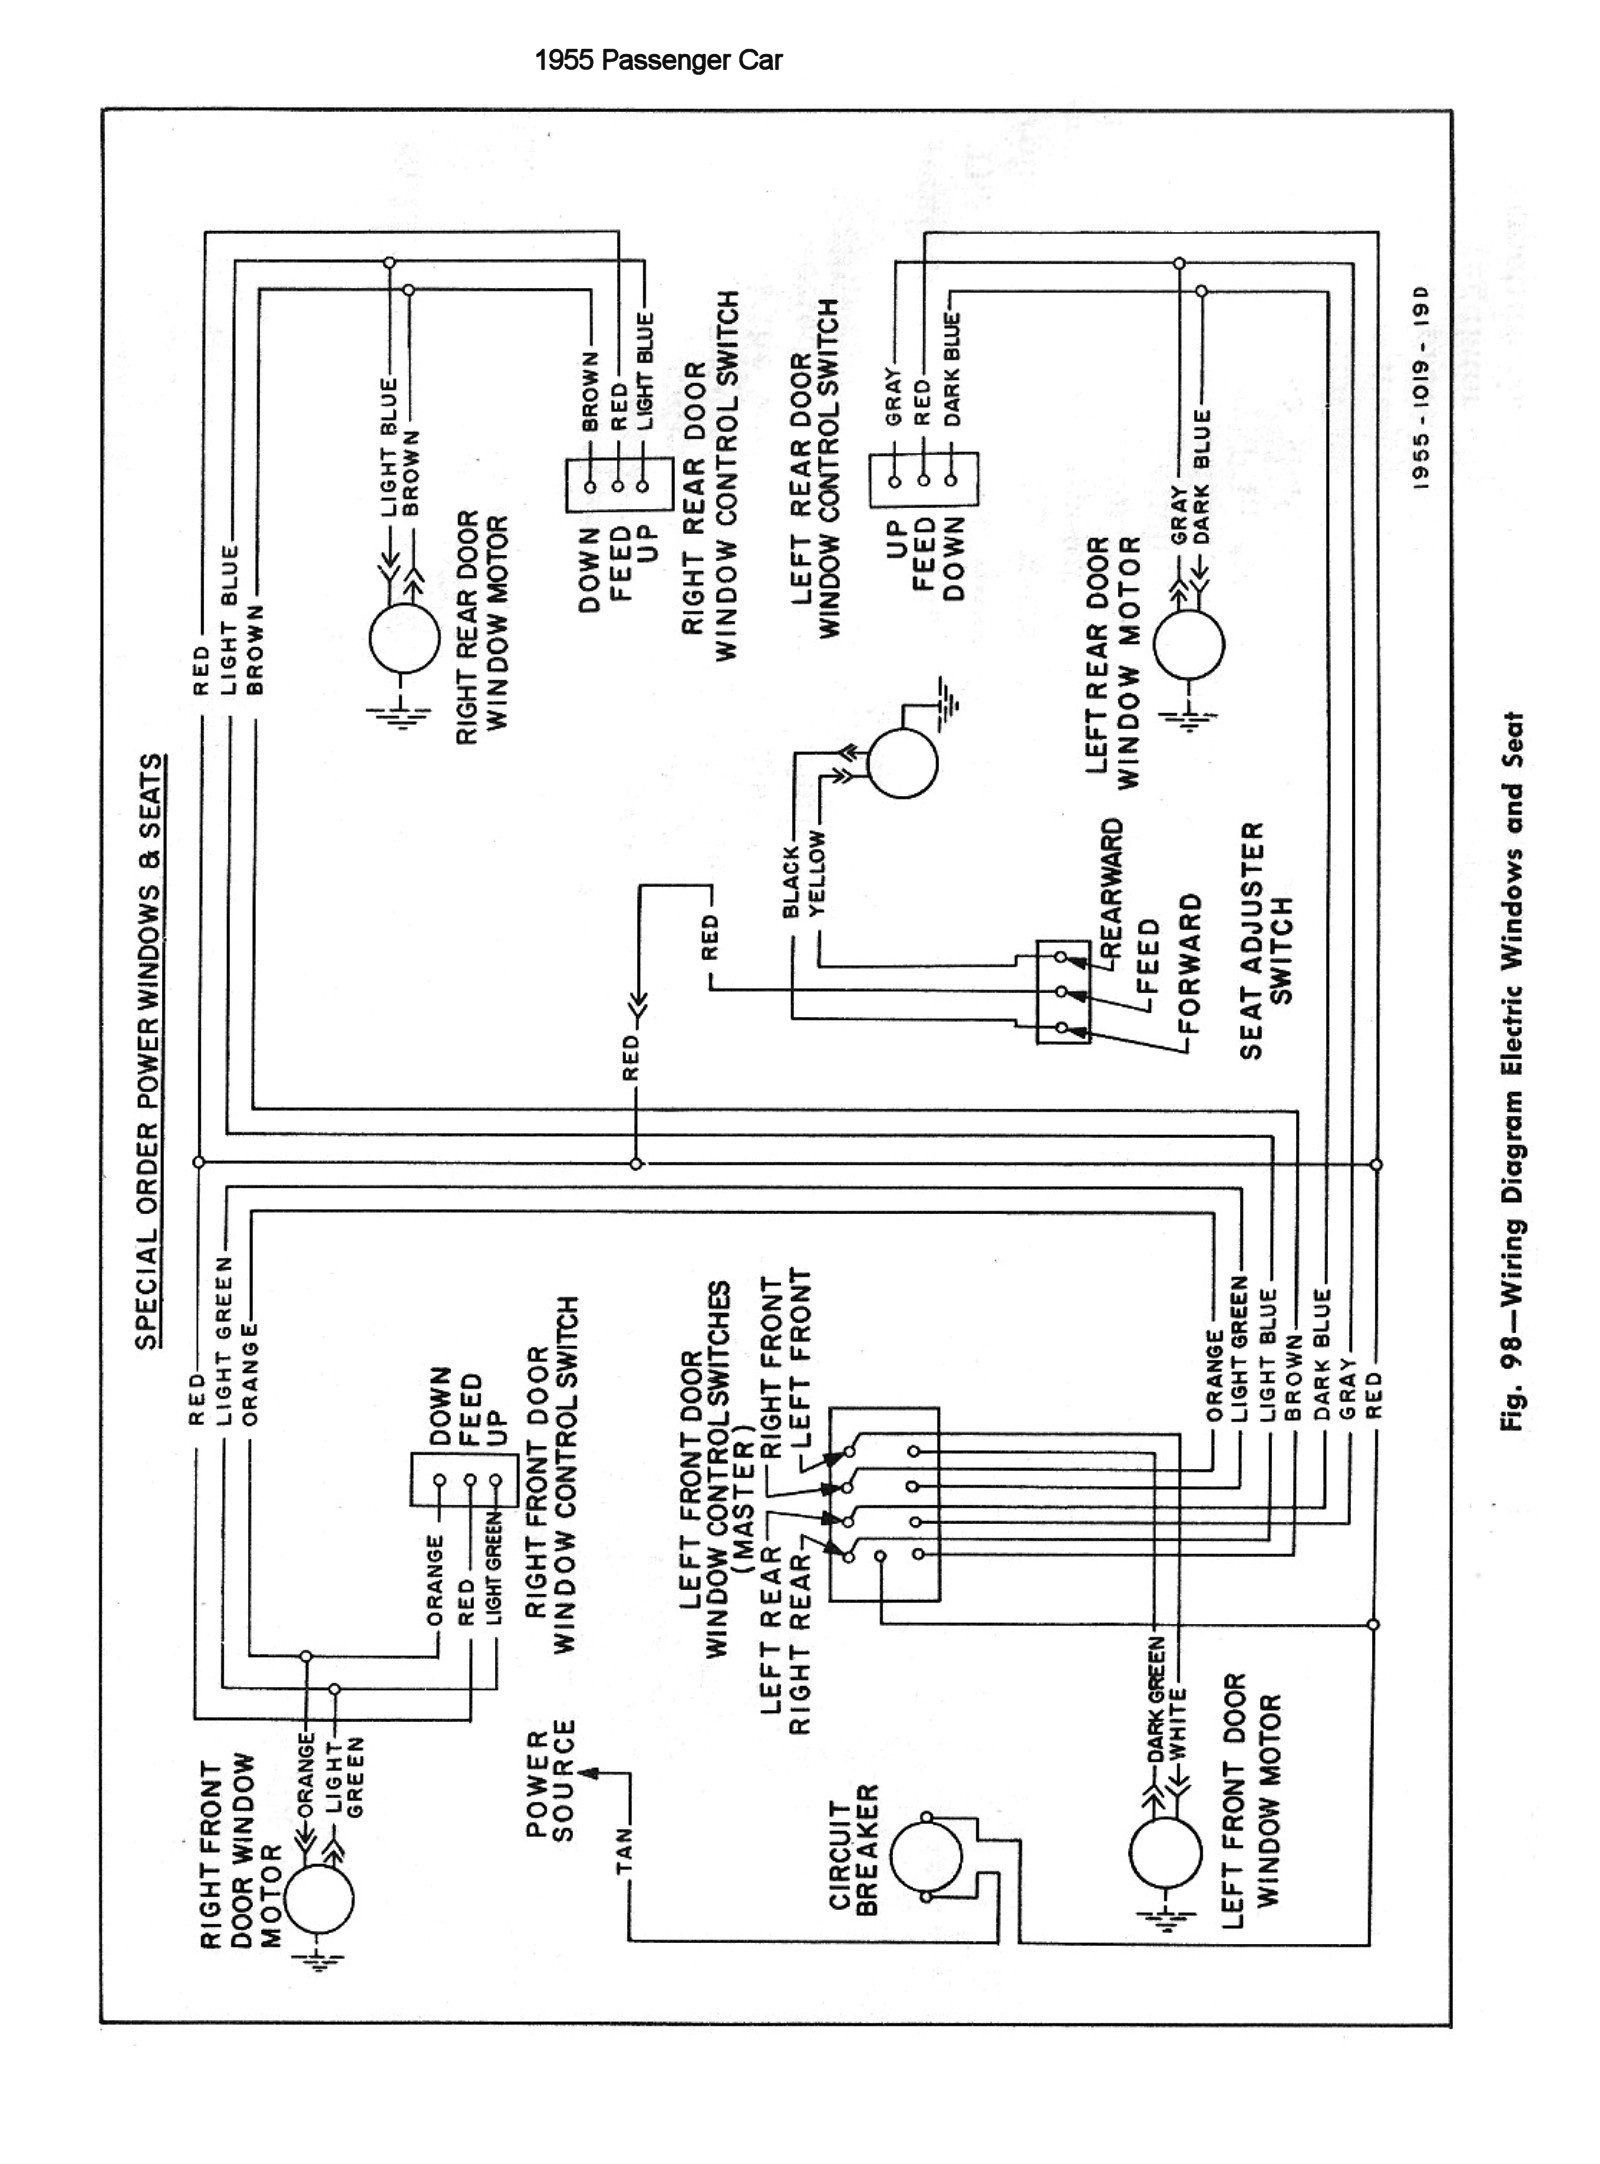 1955 Chevy Voltage Regulator Wiring Diagram Wiring Diagram Regulator Regulator Graniantichiumbri It